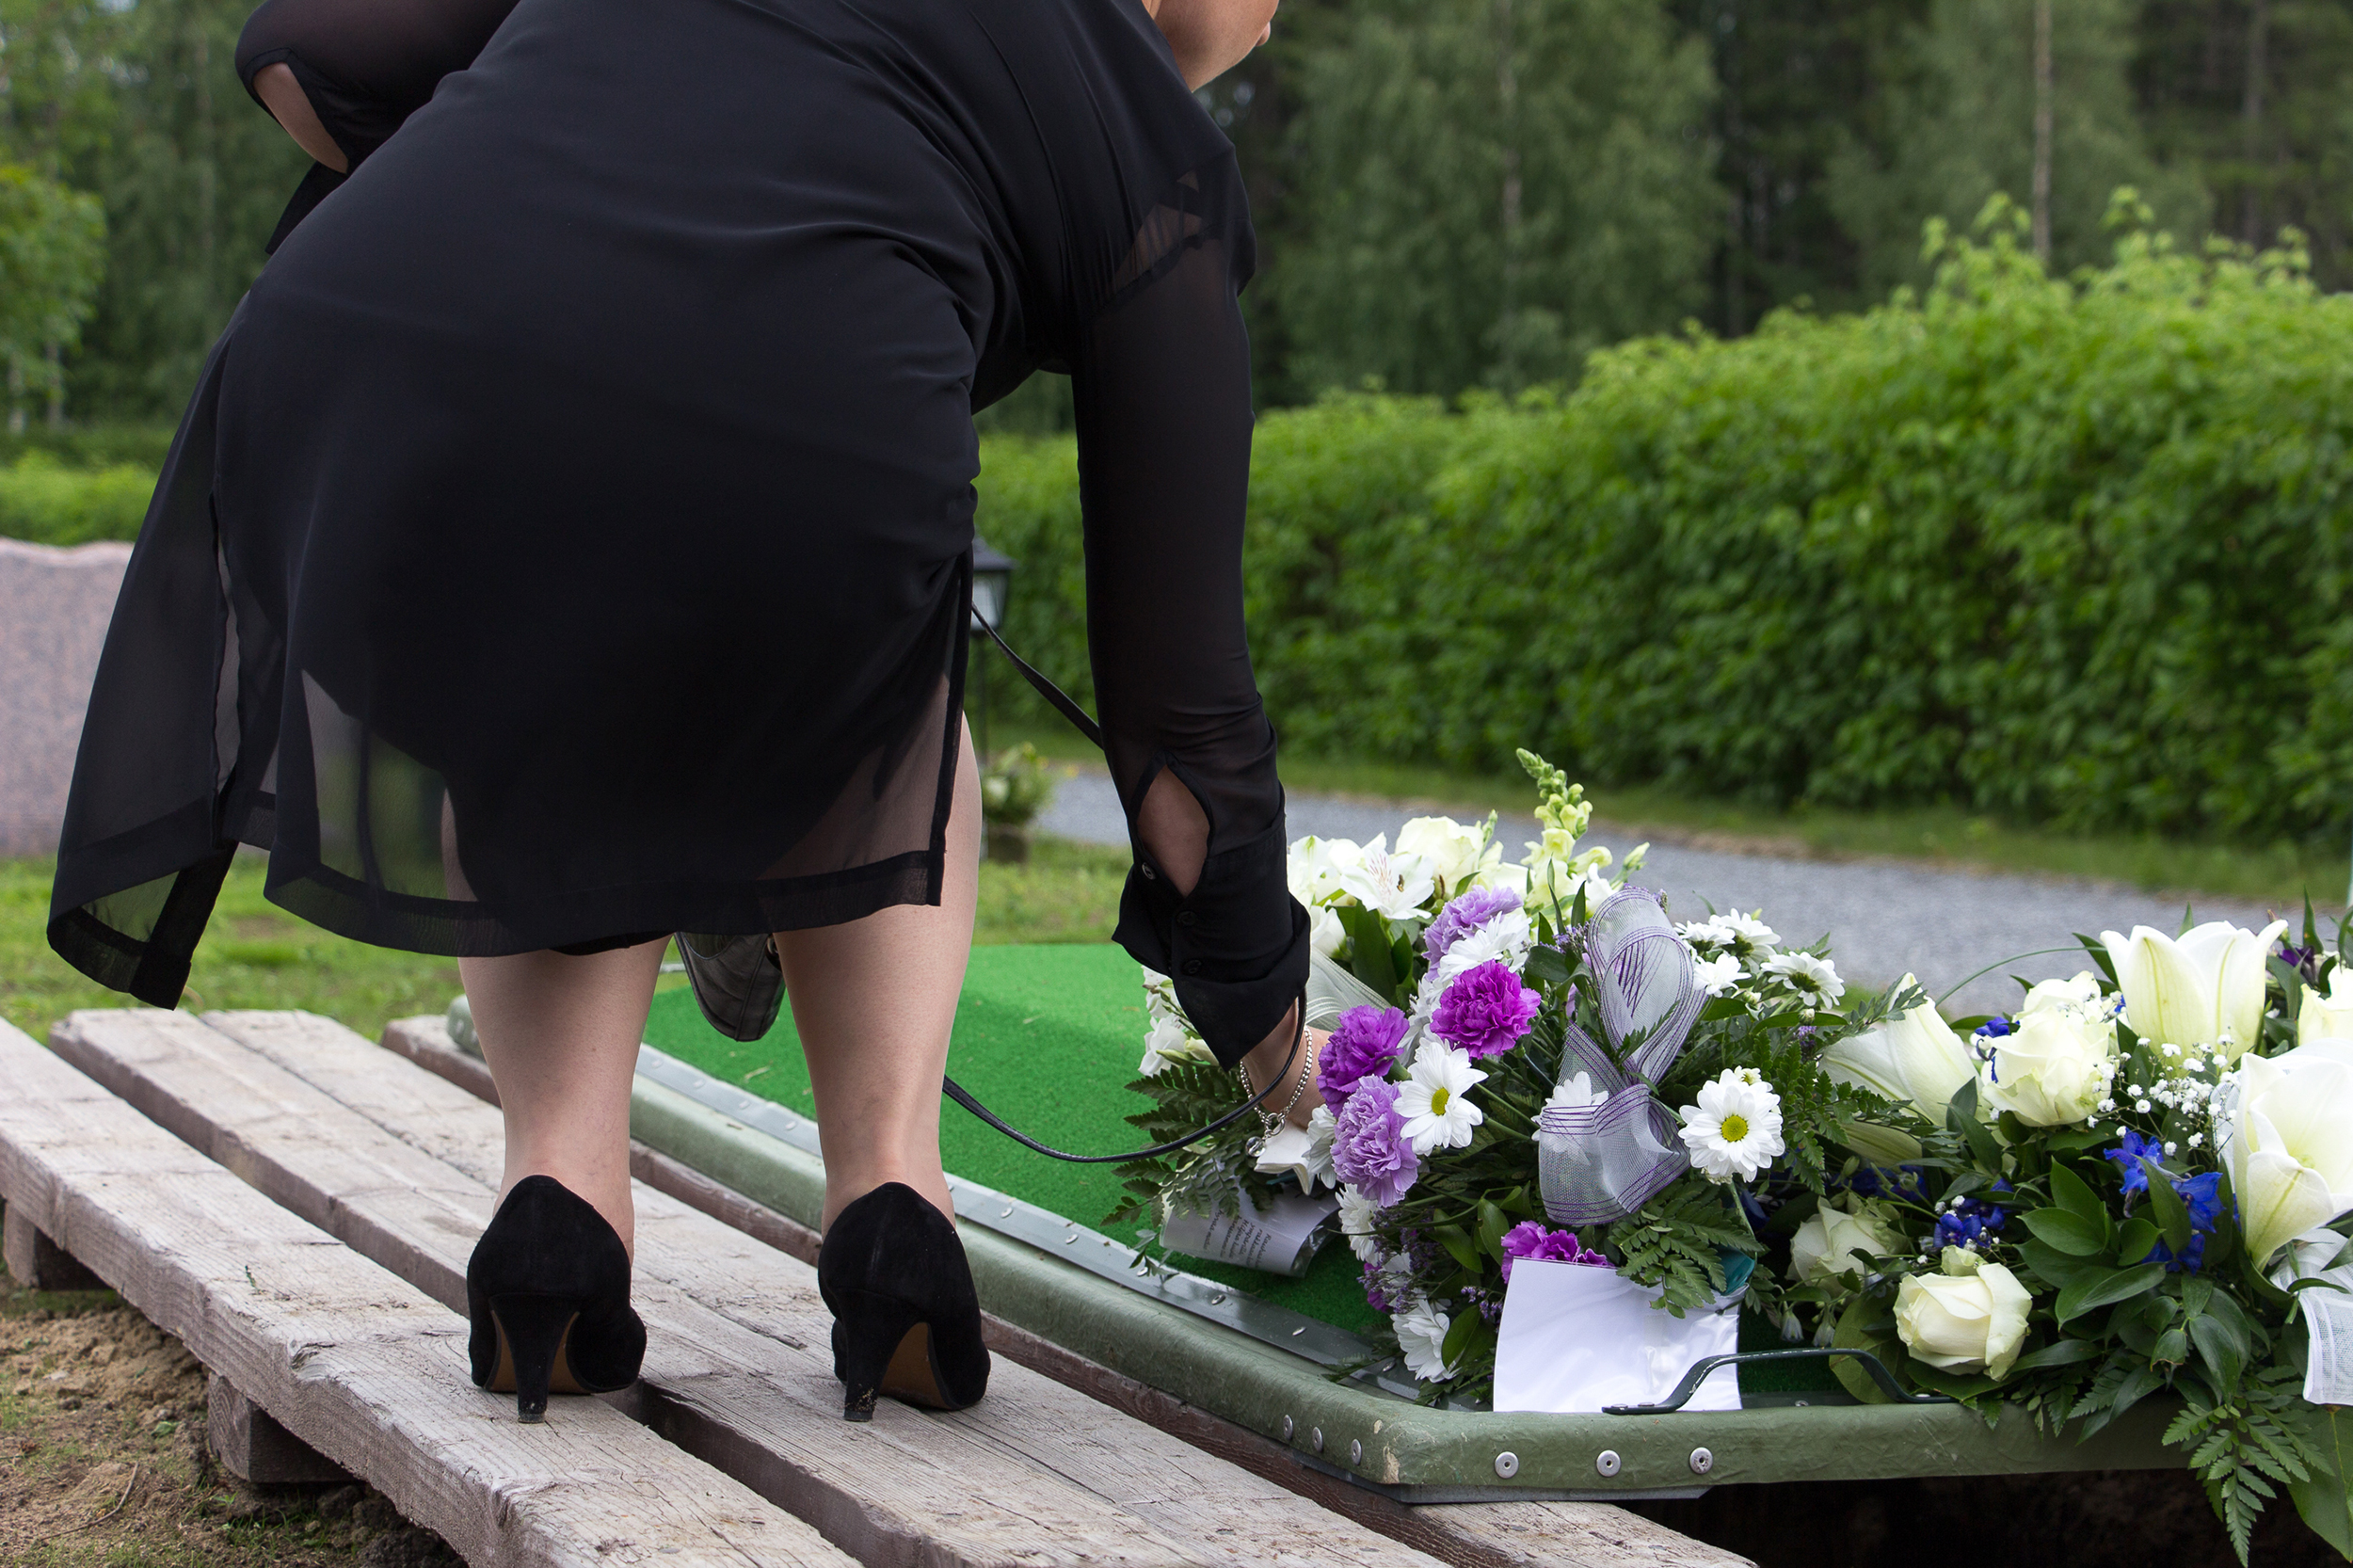 Widowhood increases risk of Alzheimer's, study says